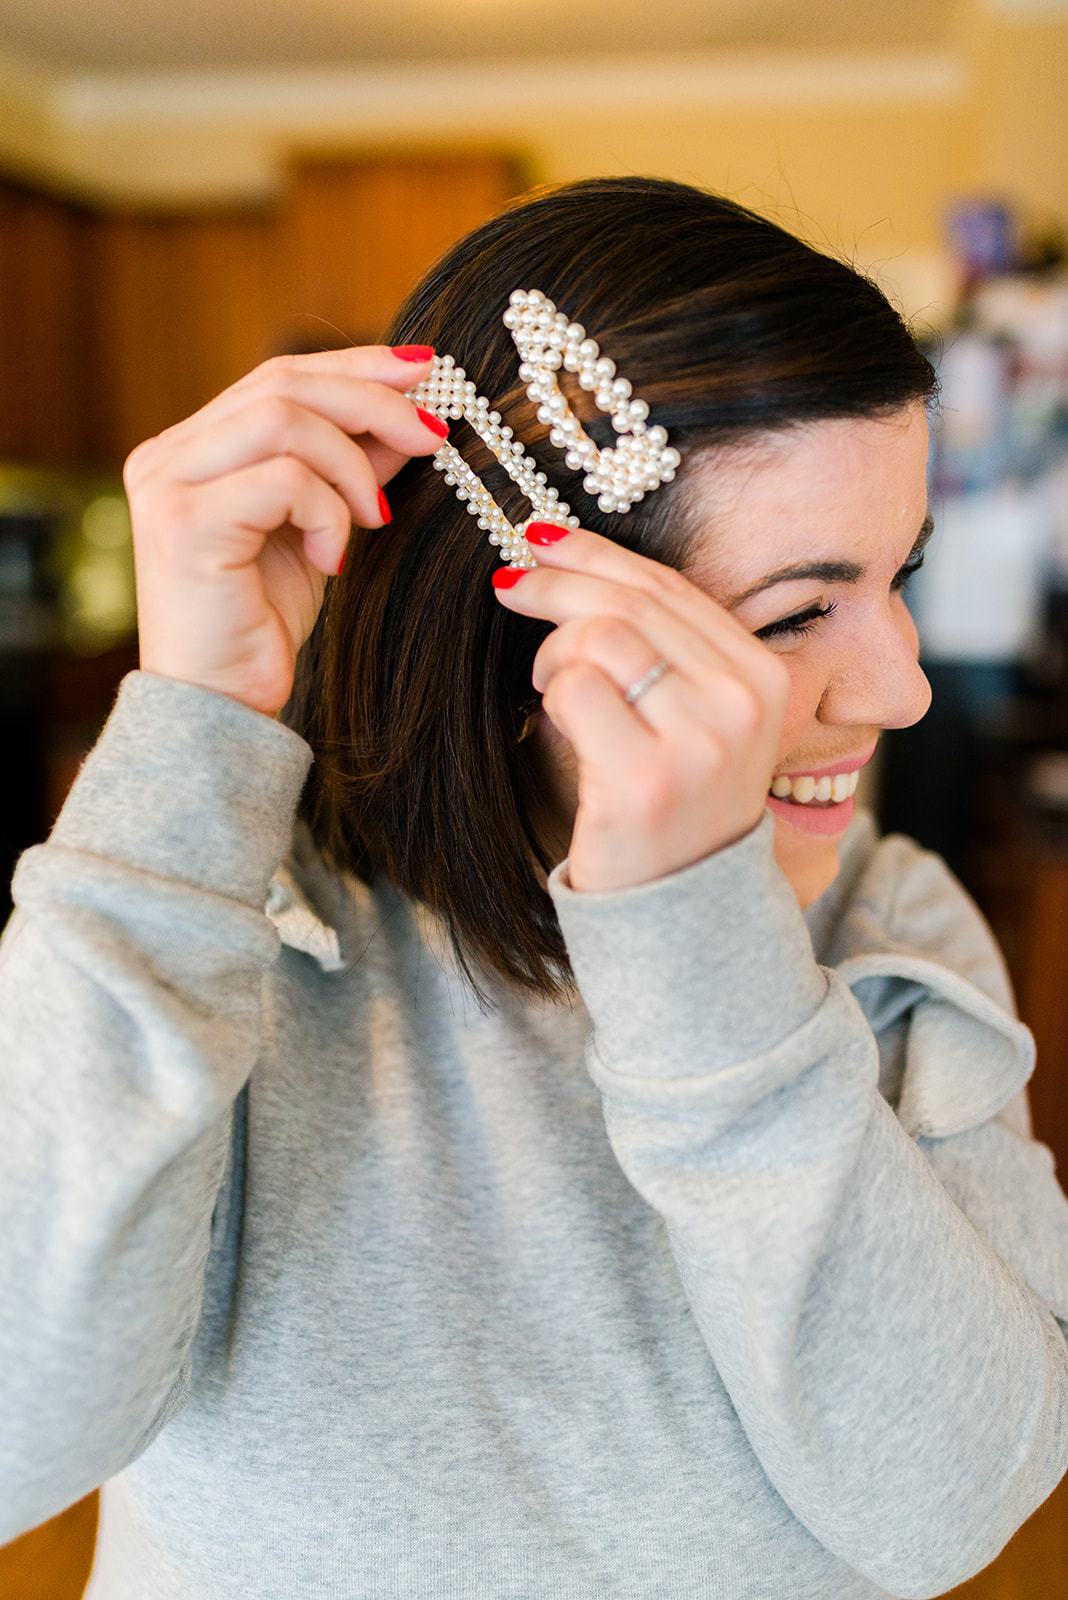 3 Hair Accessories to Try